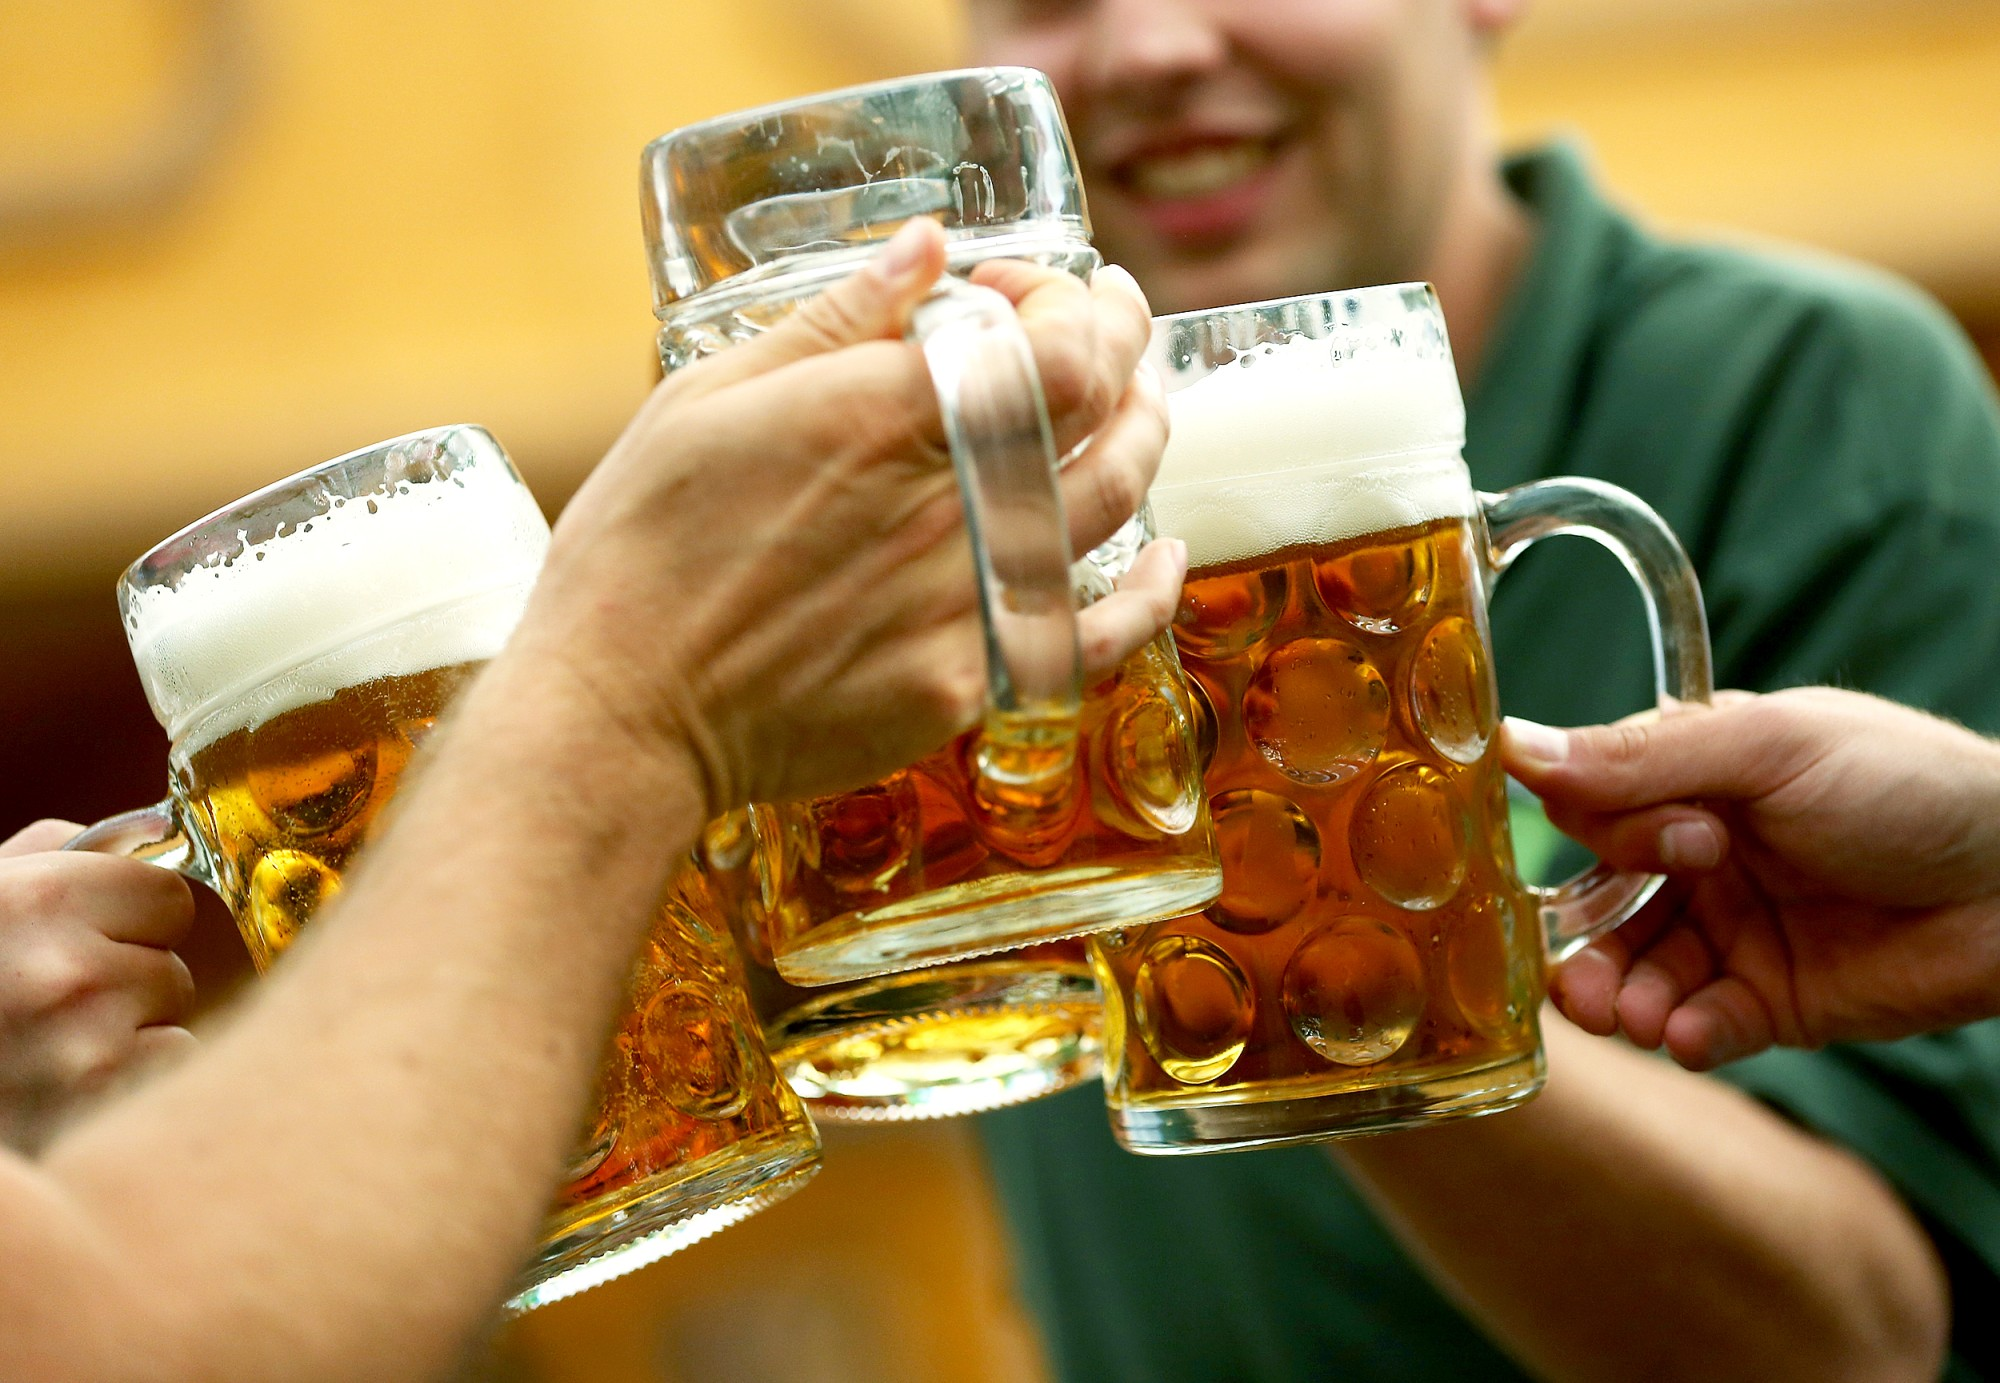 Severe alcohol-related liver disease on the rise